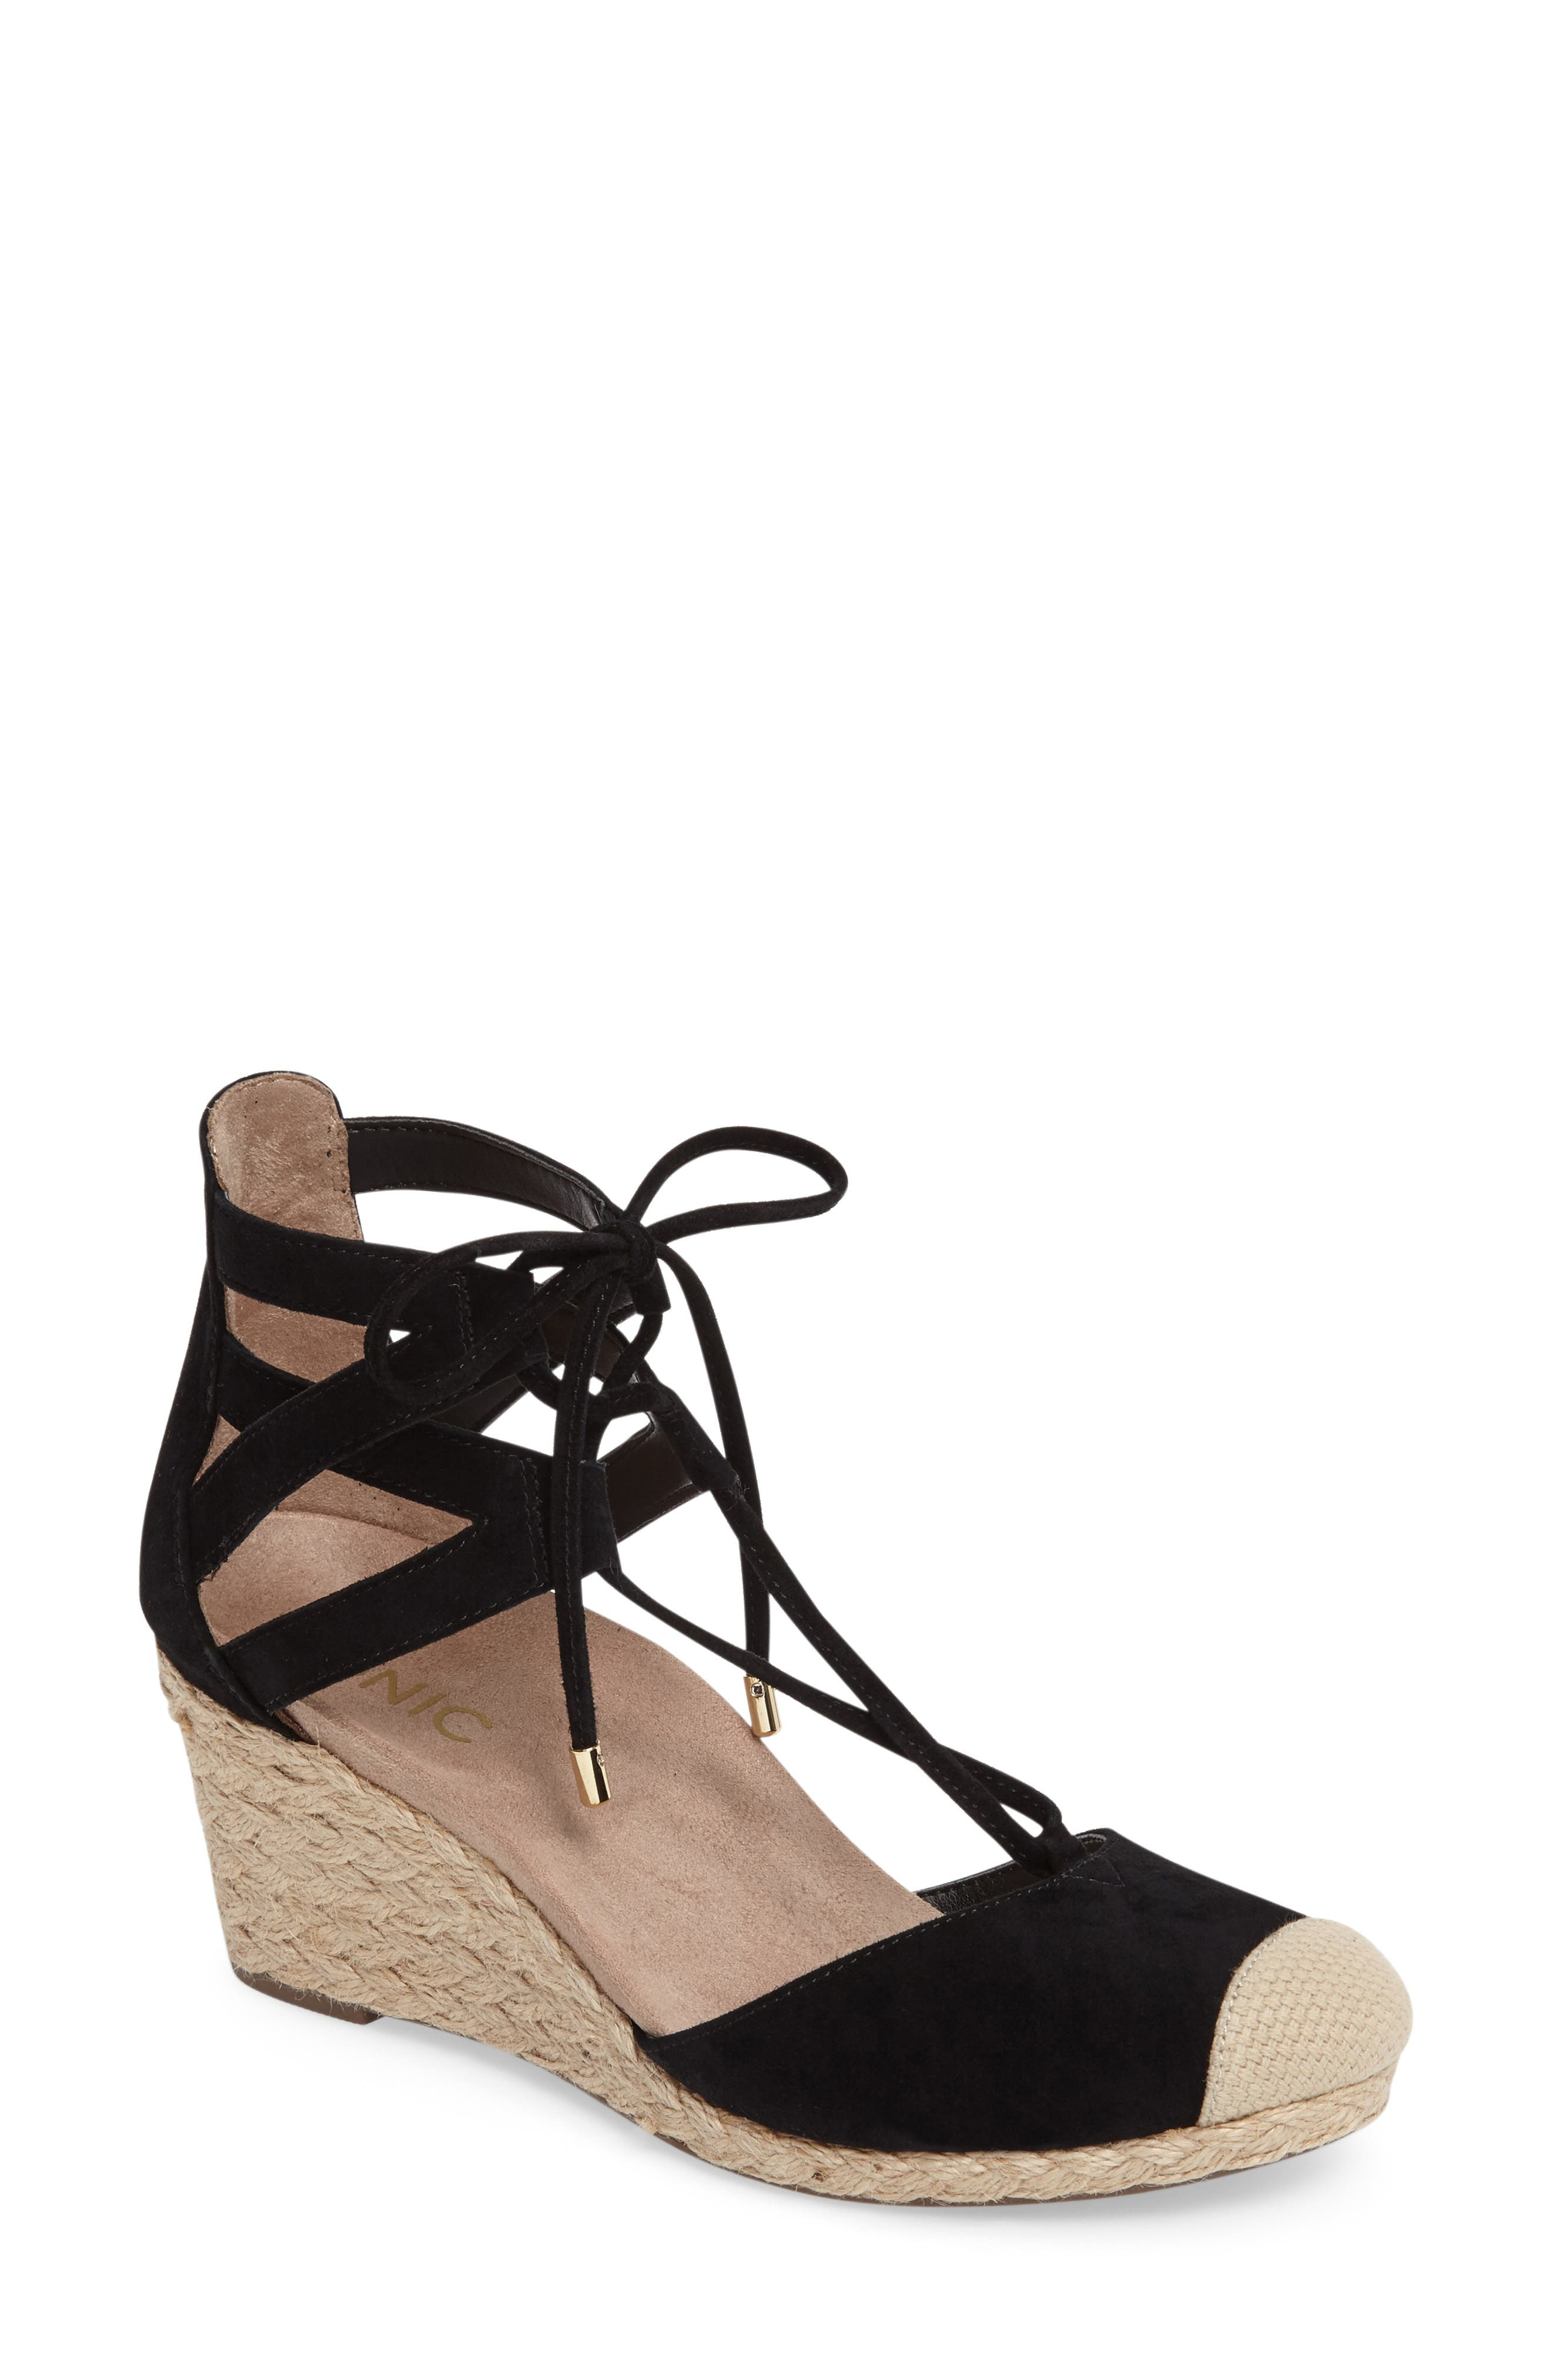 Vionic Calypso Wedge Sandal (Women)